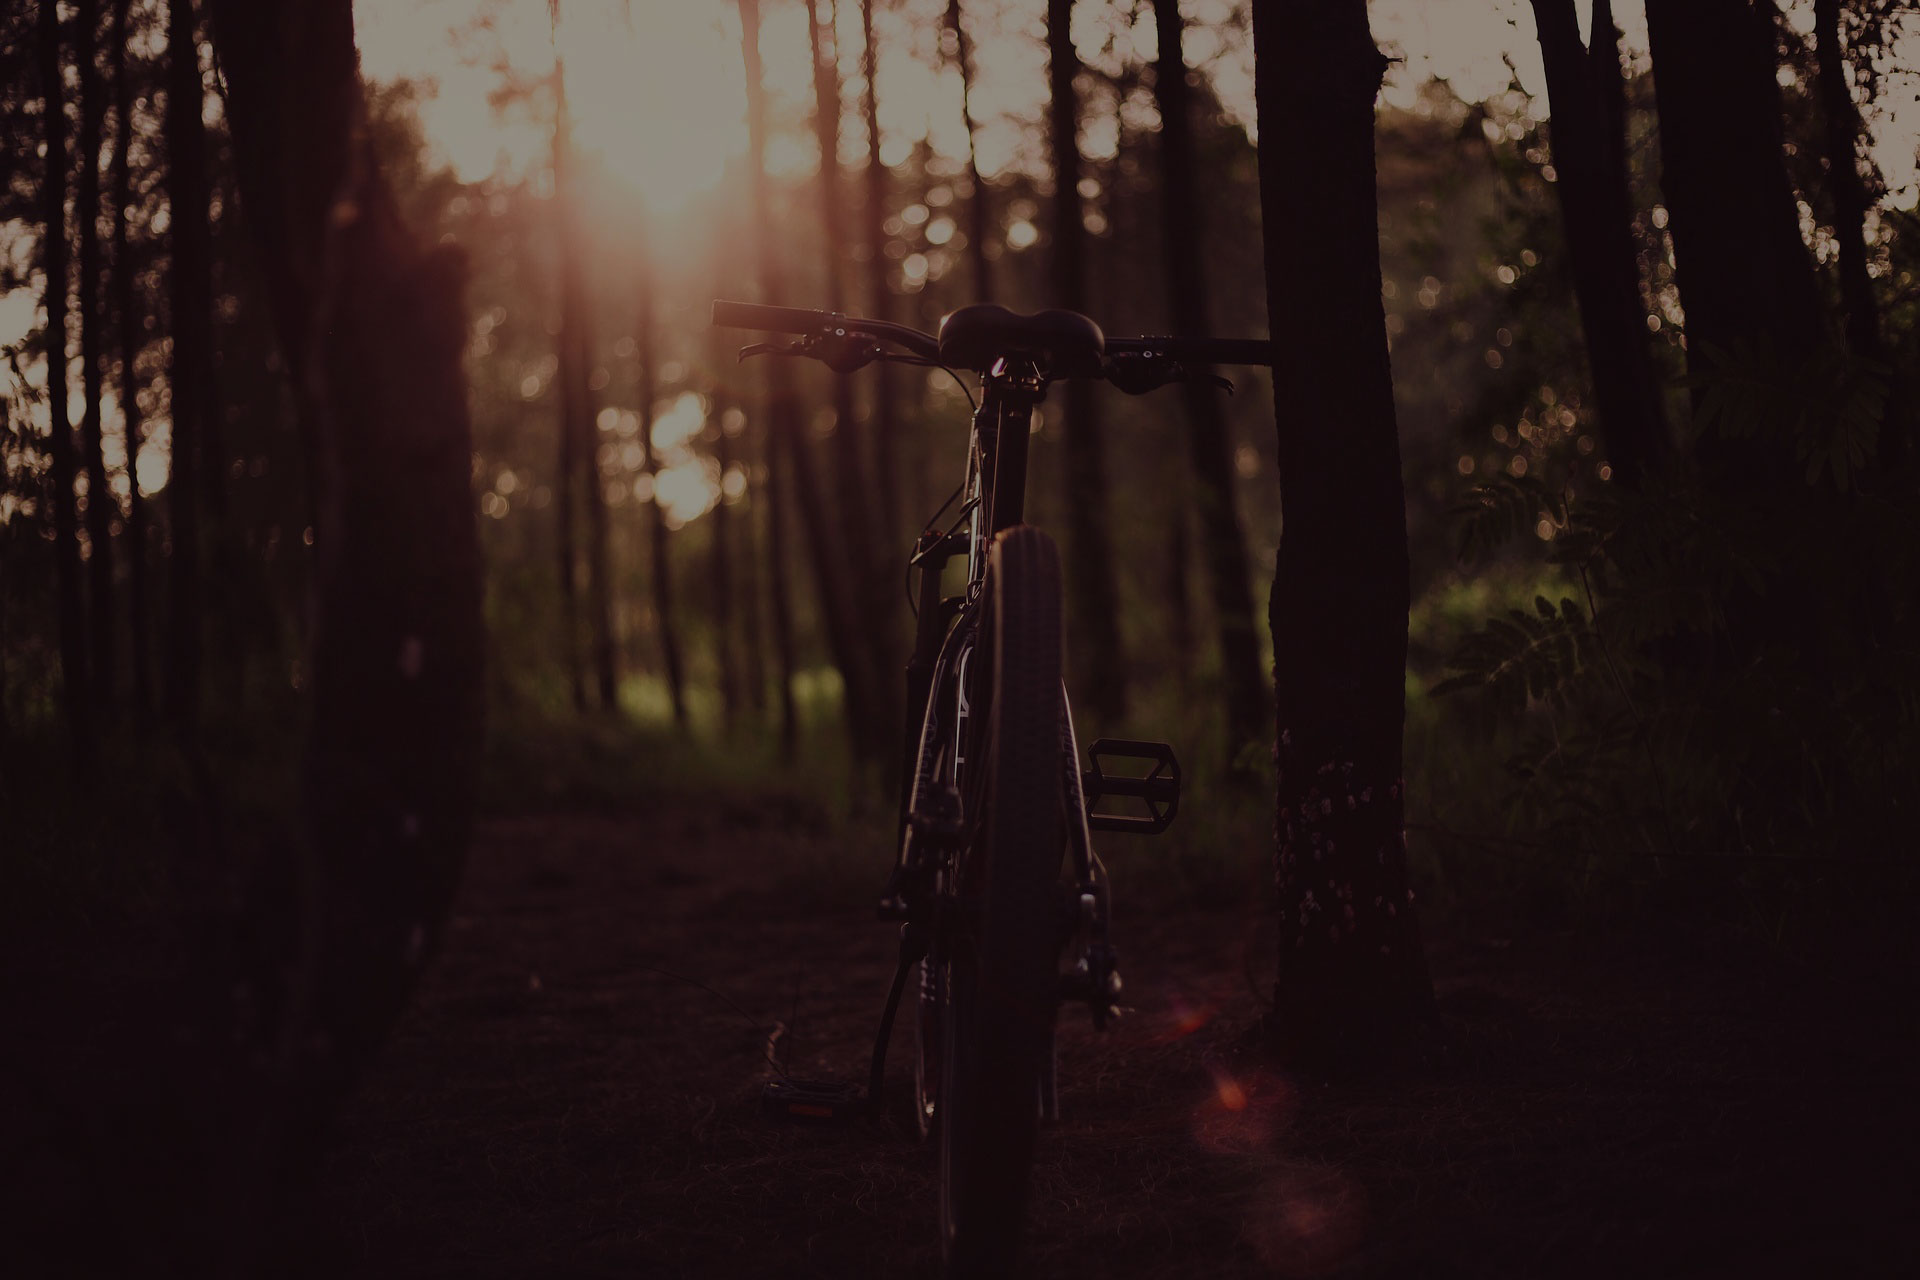 BiCycle in woods